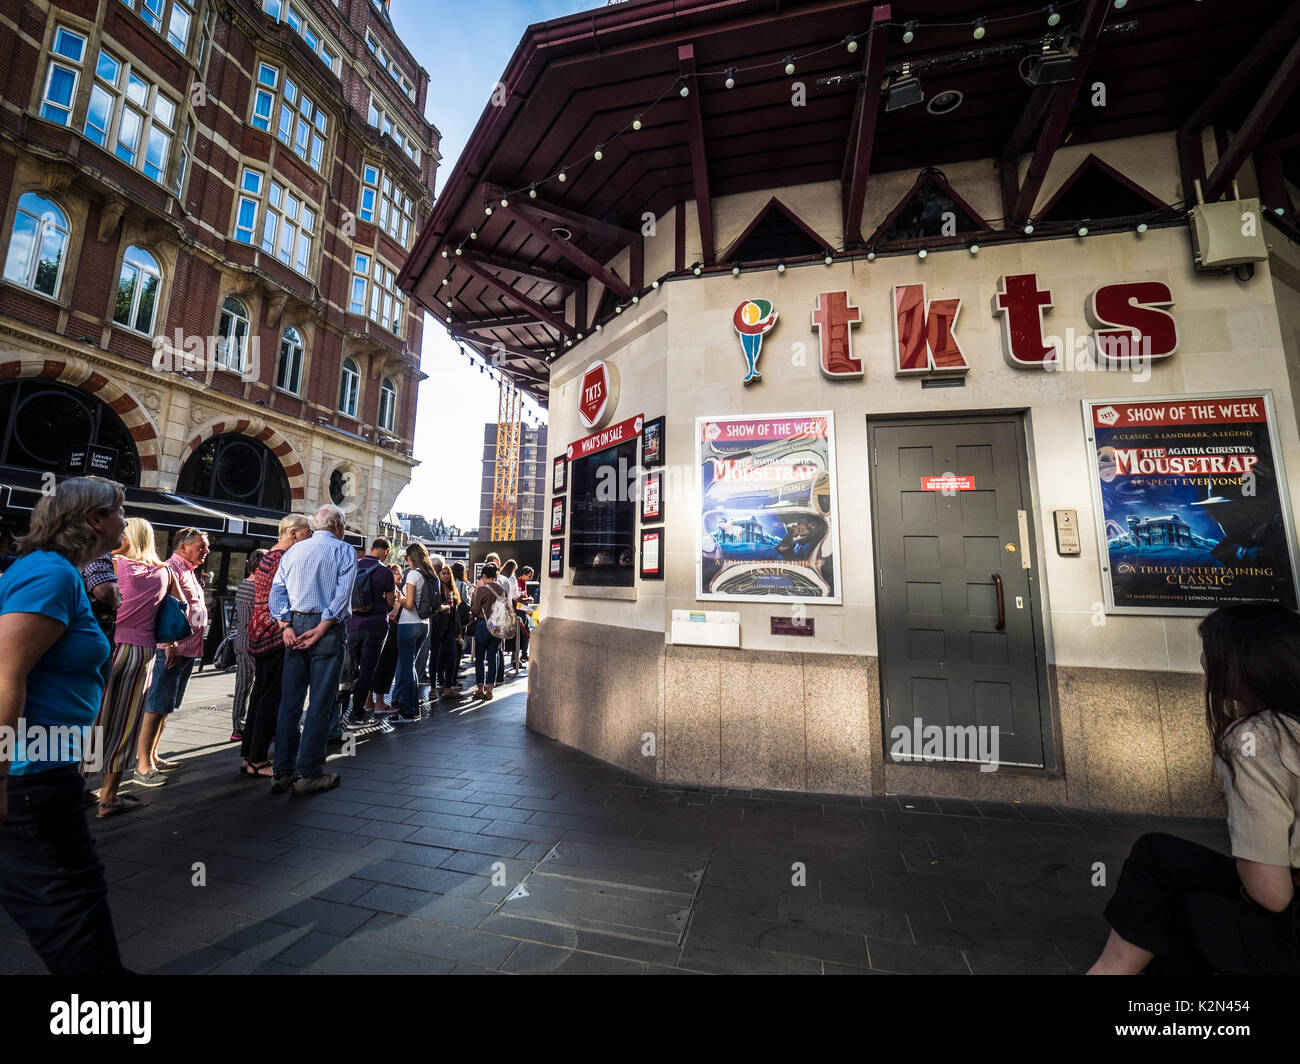 TKTS booth in Leicester Square London's Theatre District